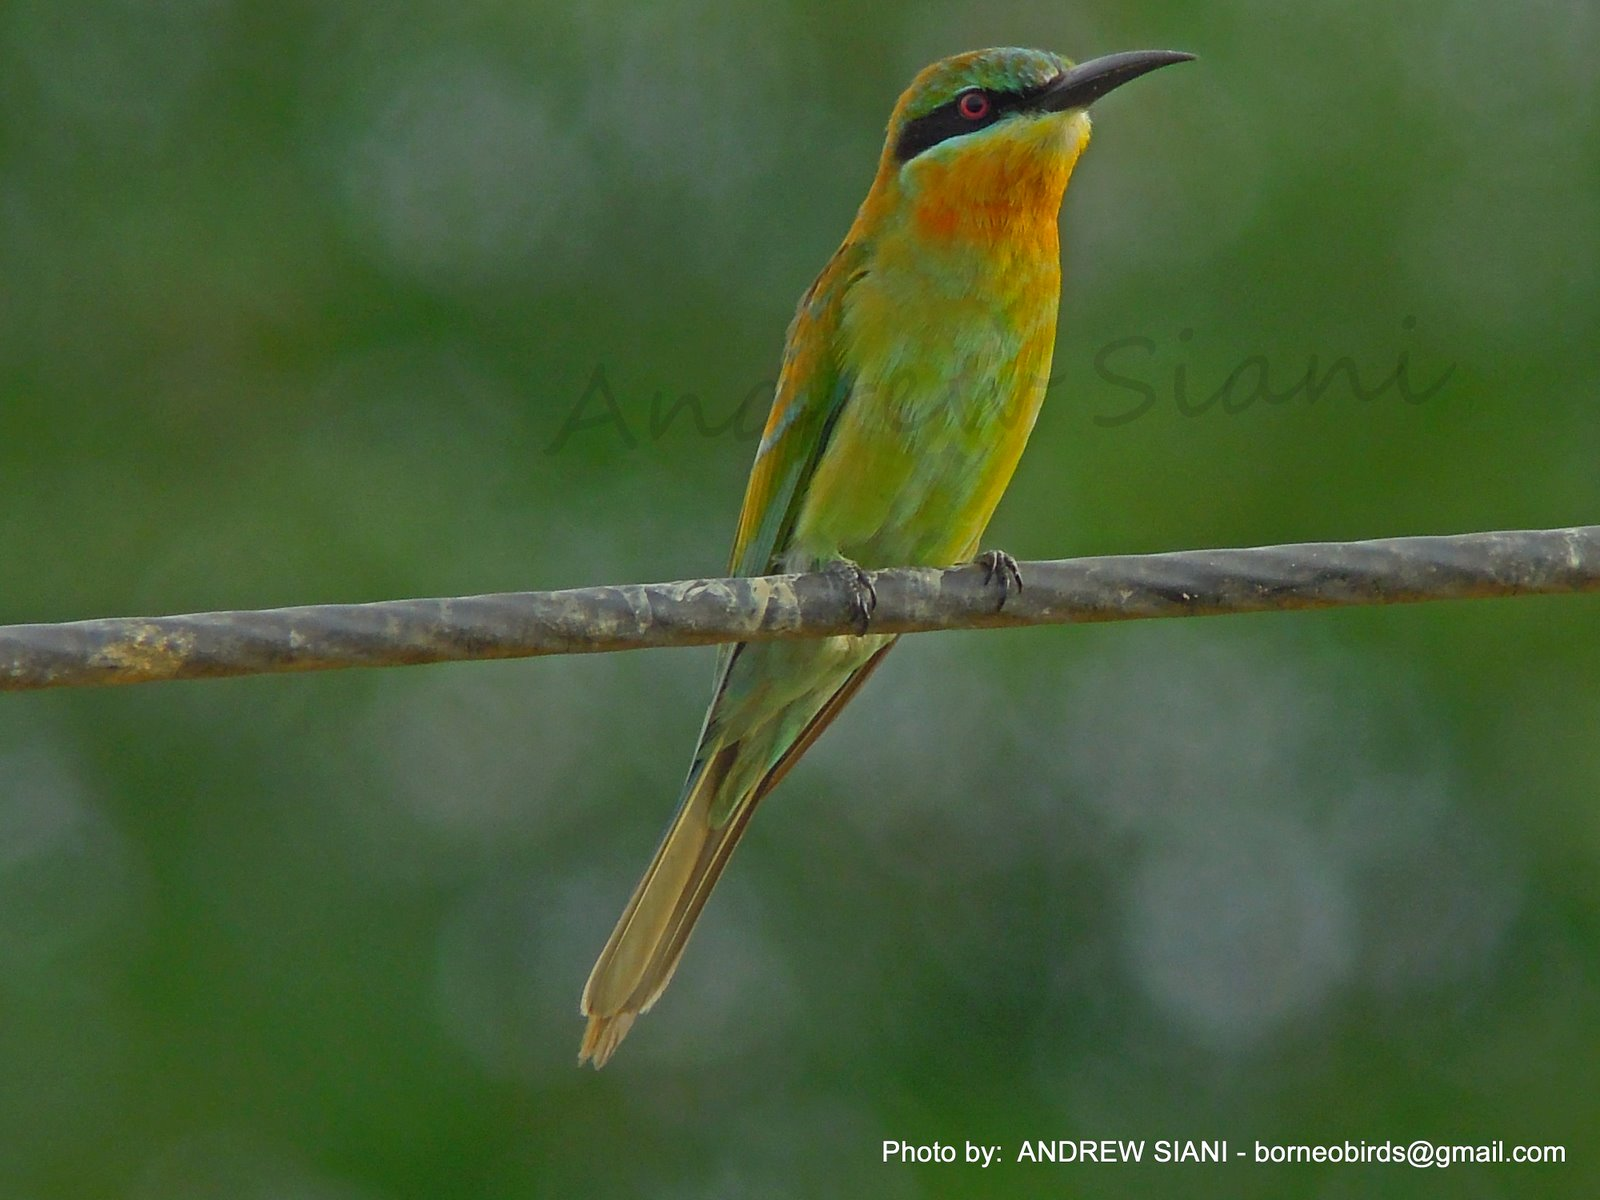 Borneo Avifauna: Blue-tailed Bee-Eater - Merops philippinus